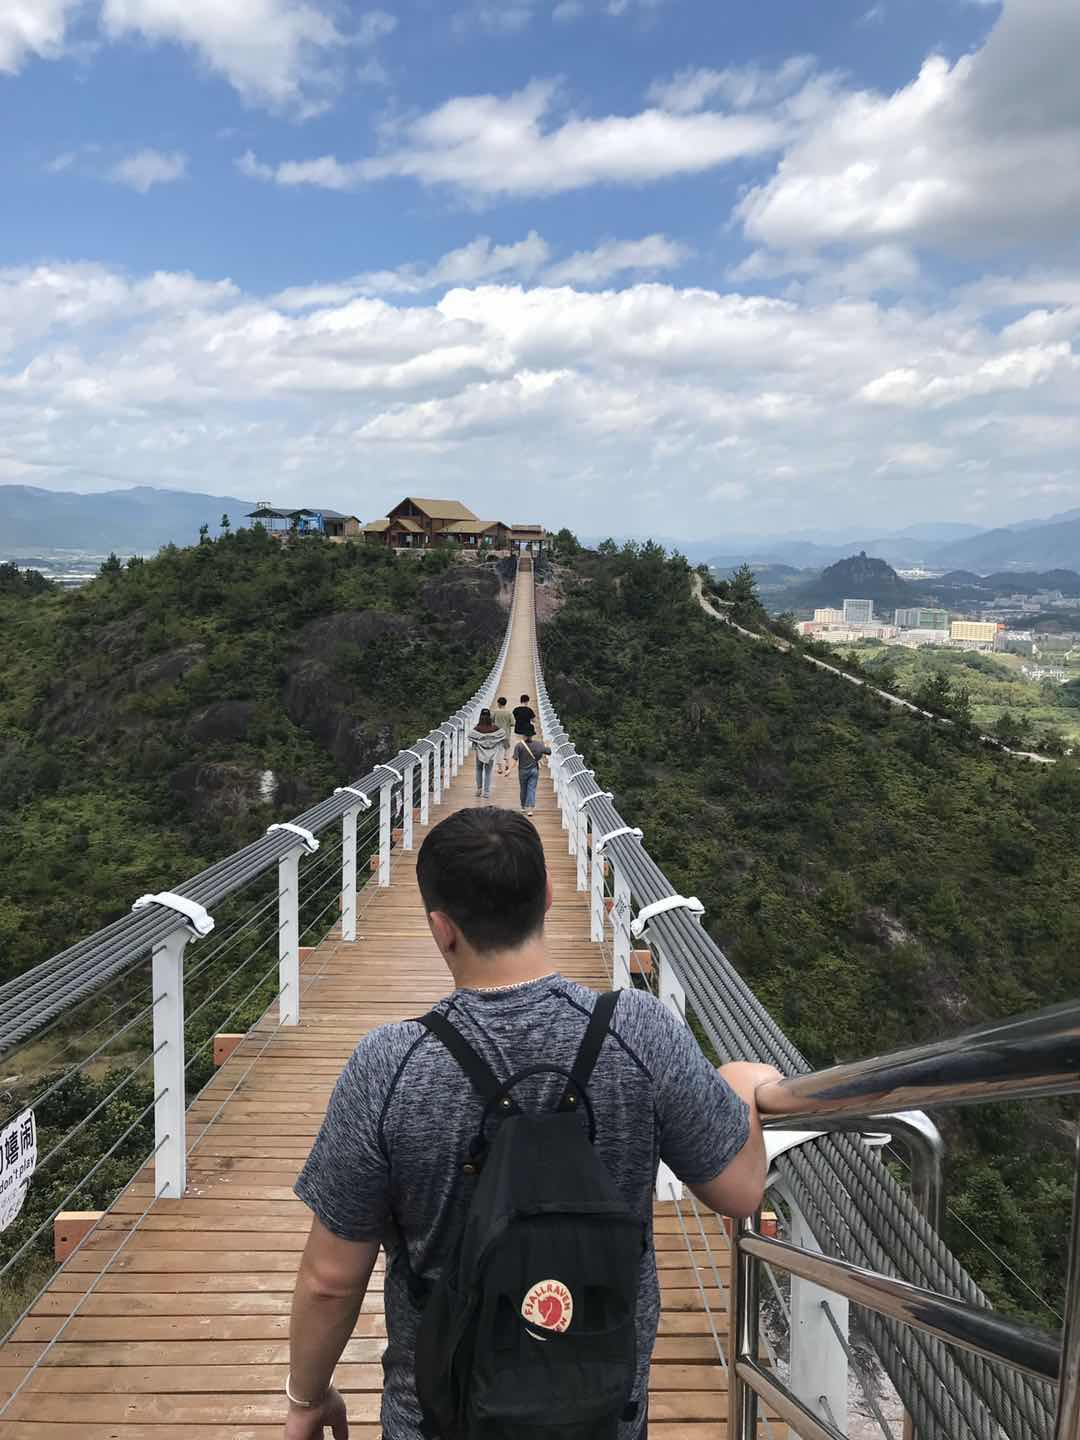 Student Profile: Dustin from the US tells us about life in rural China during the COVID-19 pandemic